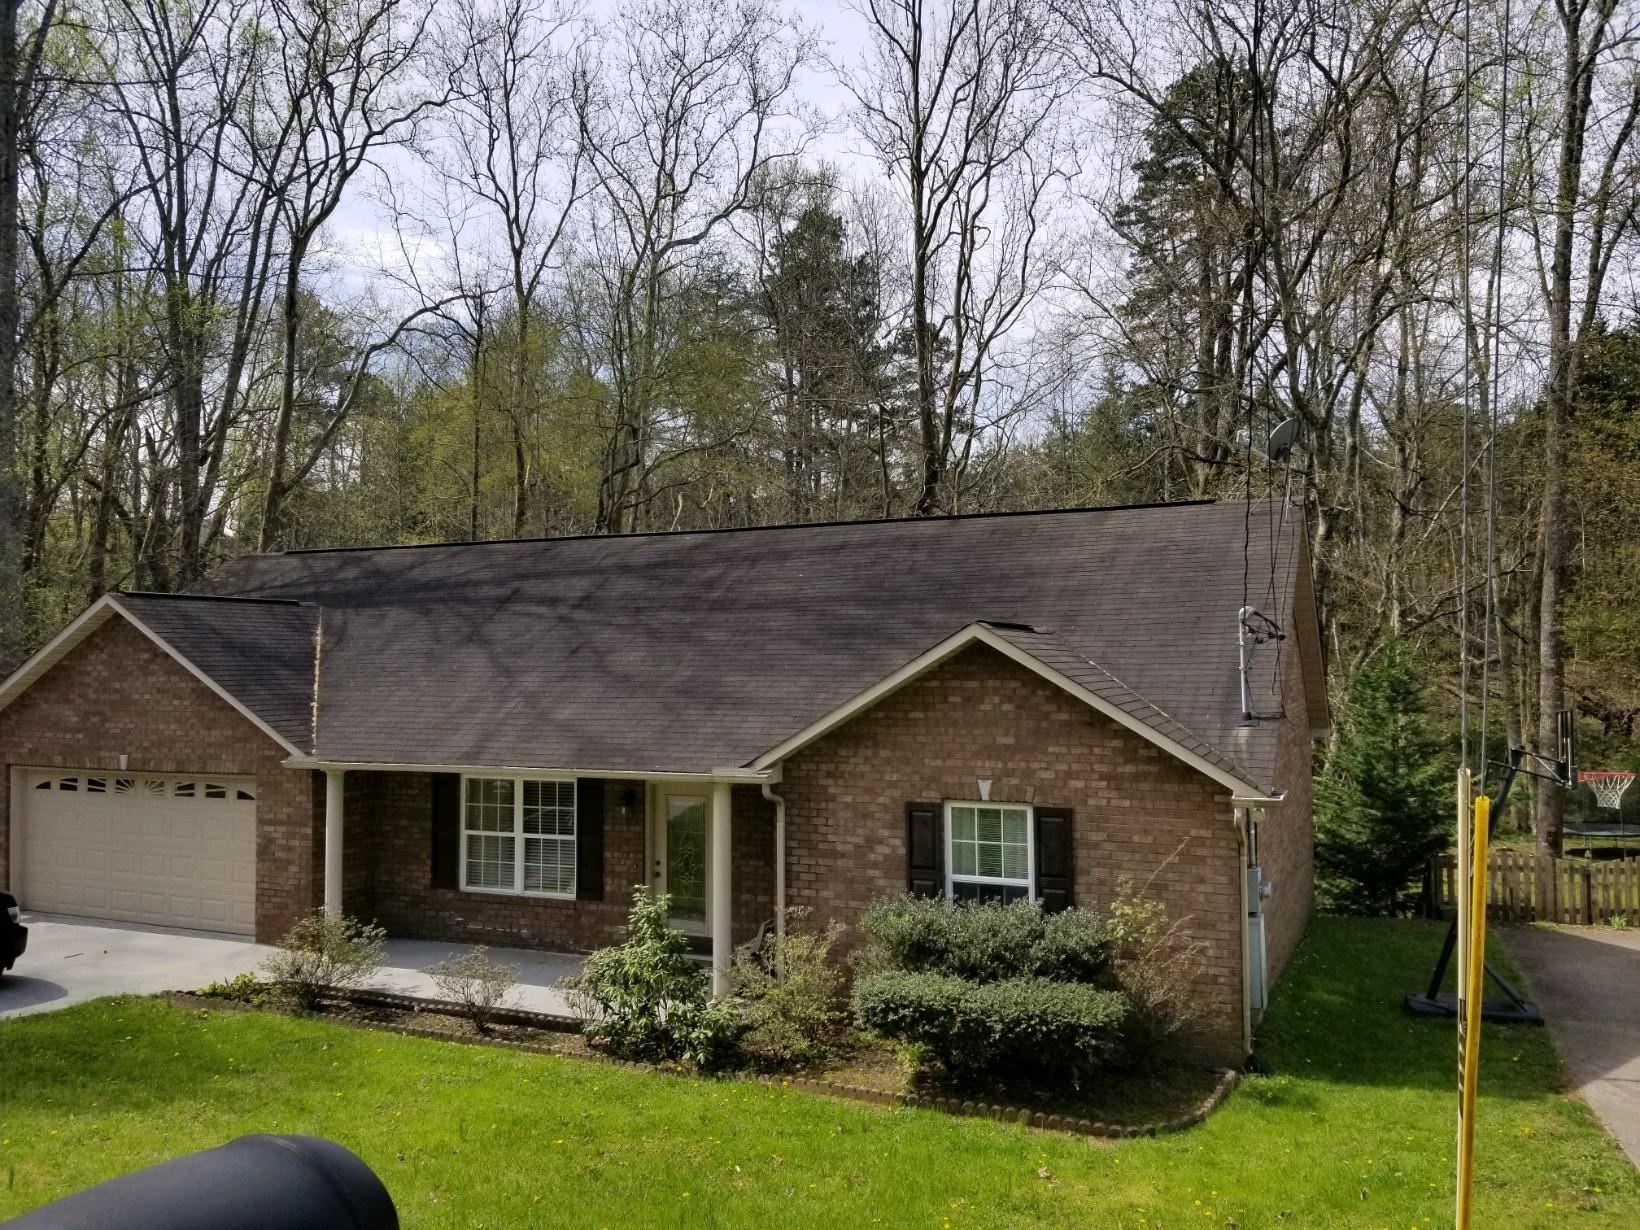 Photo of 4801 Mccloud Rd, Knoxville, TN 37938 (MLS # 1112608)